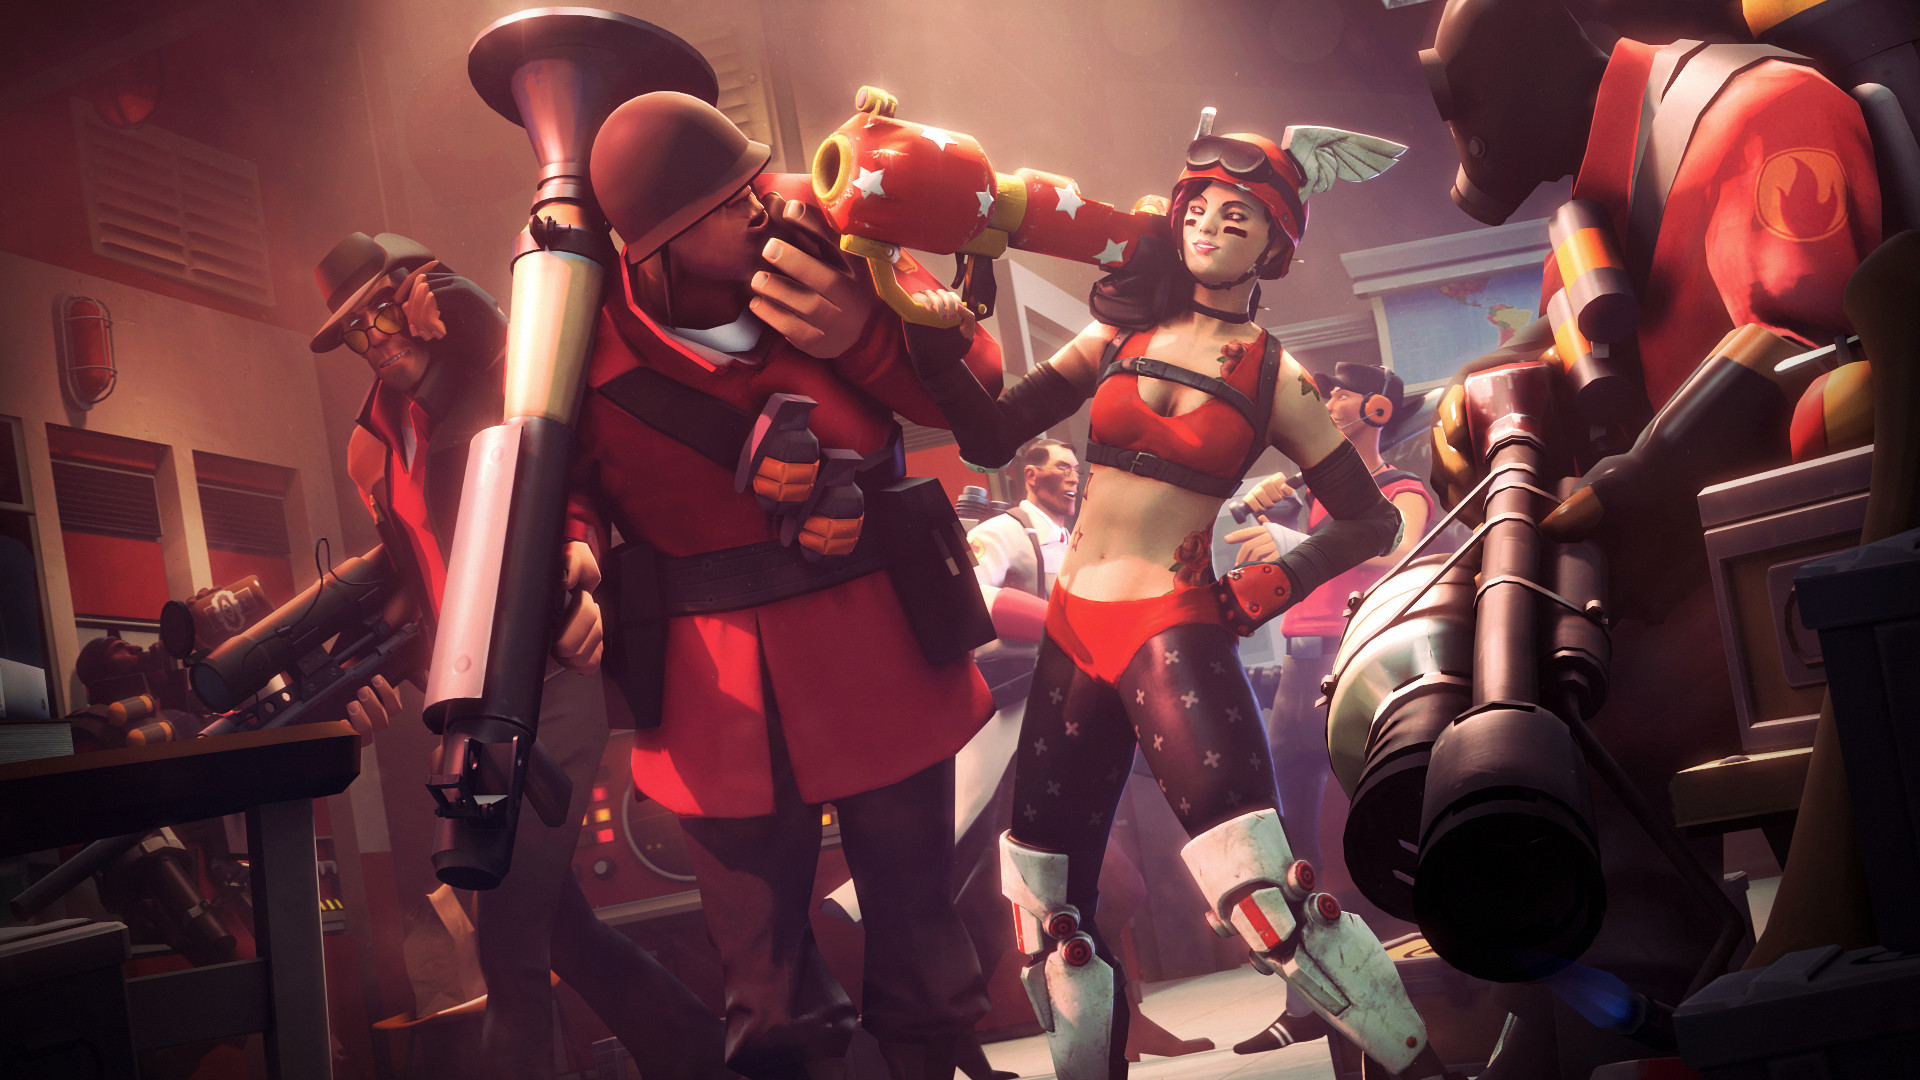 1920x1080 Valve Introducing Harsher Penalties for Team Fortress 2 Competitive  Quitters - SegmentNext